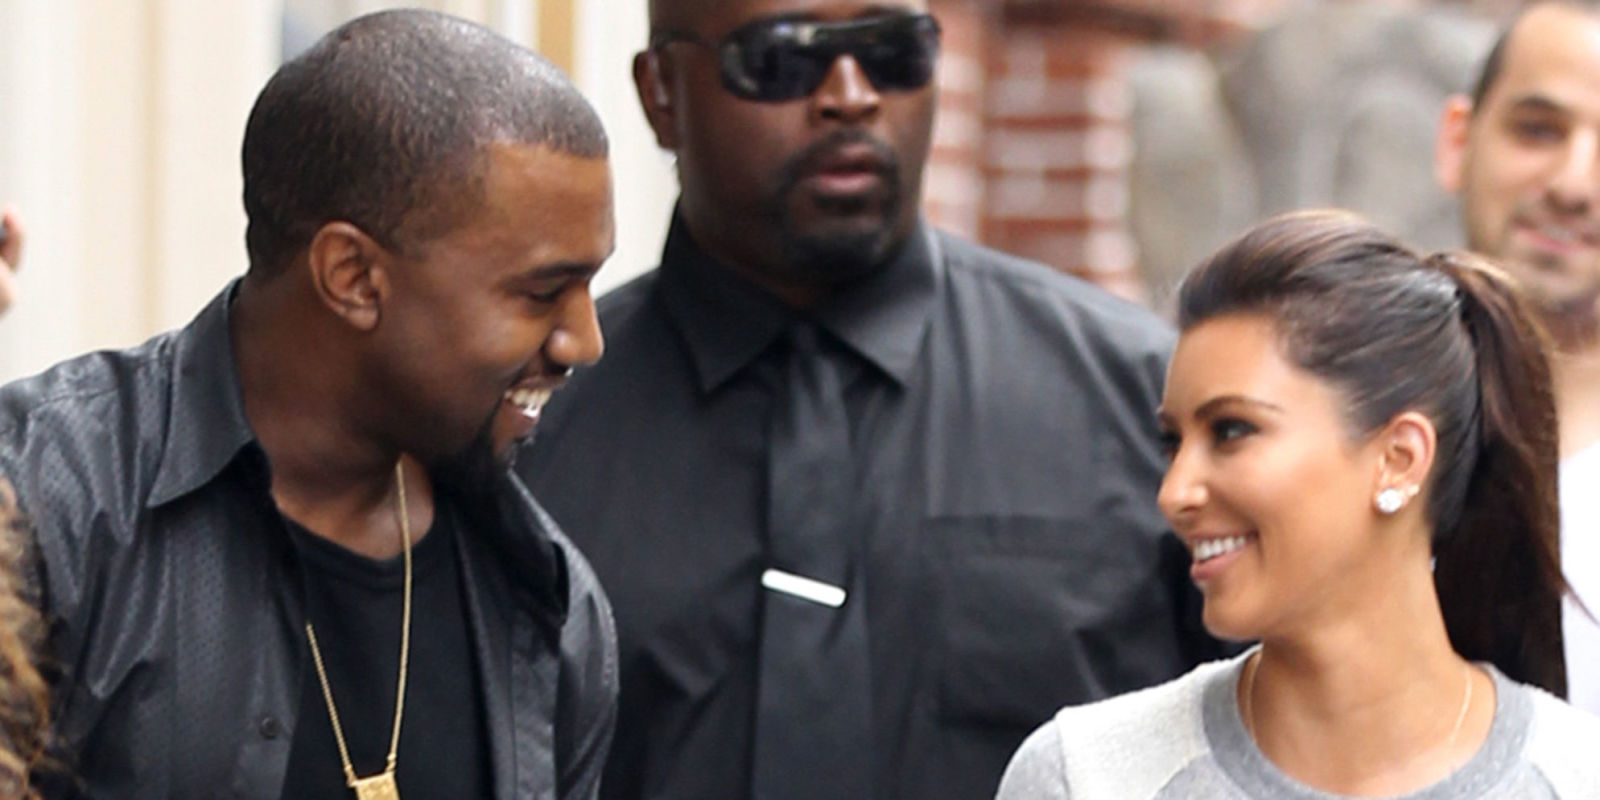 Kim and Kanye took 9 years to go from friend to fiancee